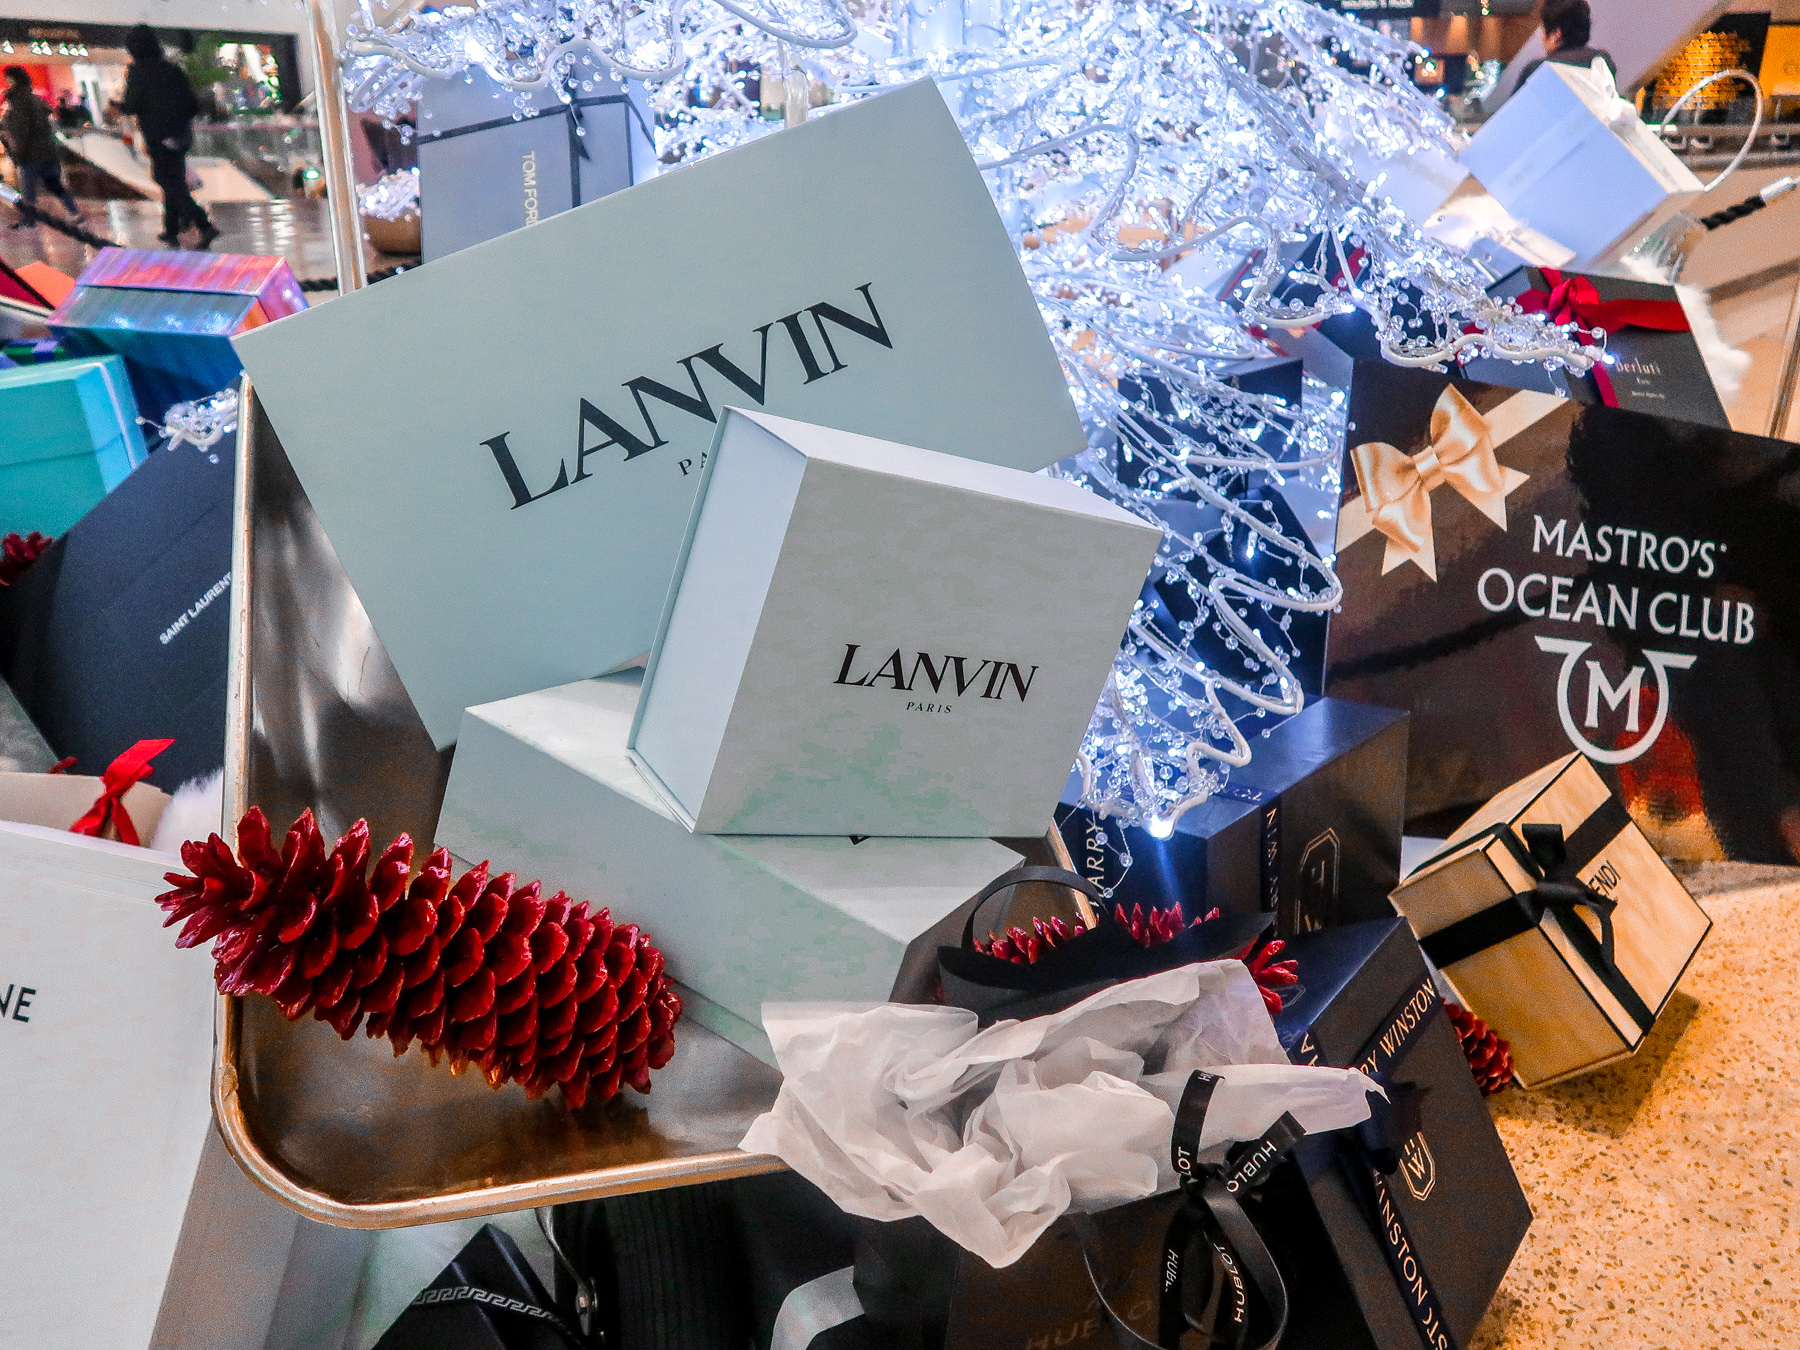 Aria Christmas Gifts | 7 Night Itinerary for Las Vegas | If you're looking to plan things to do in Vegas here's what we got up to on our 6th visit | Travel Tips | Elle Blonde Luxury Lifestyle Destination Blog